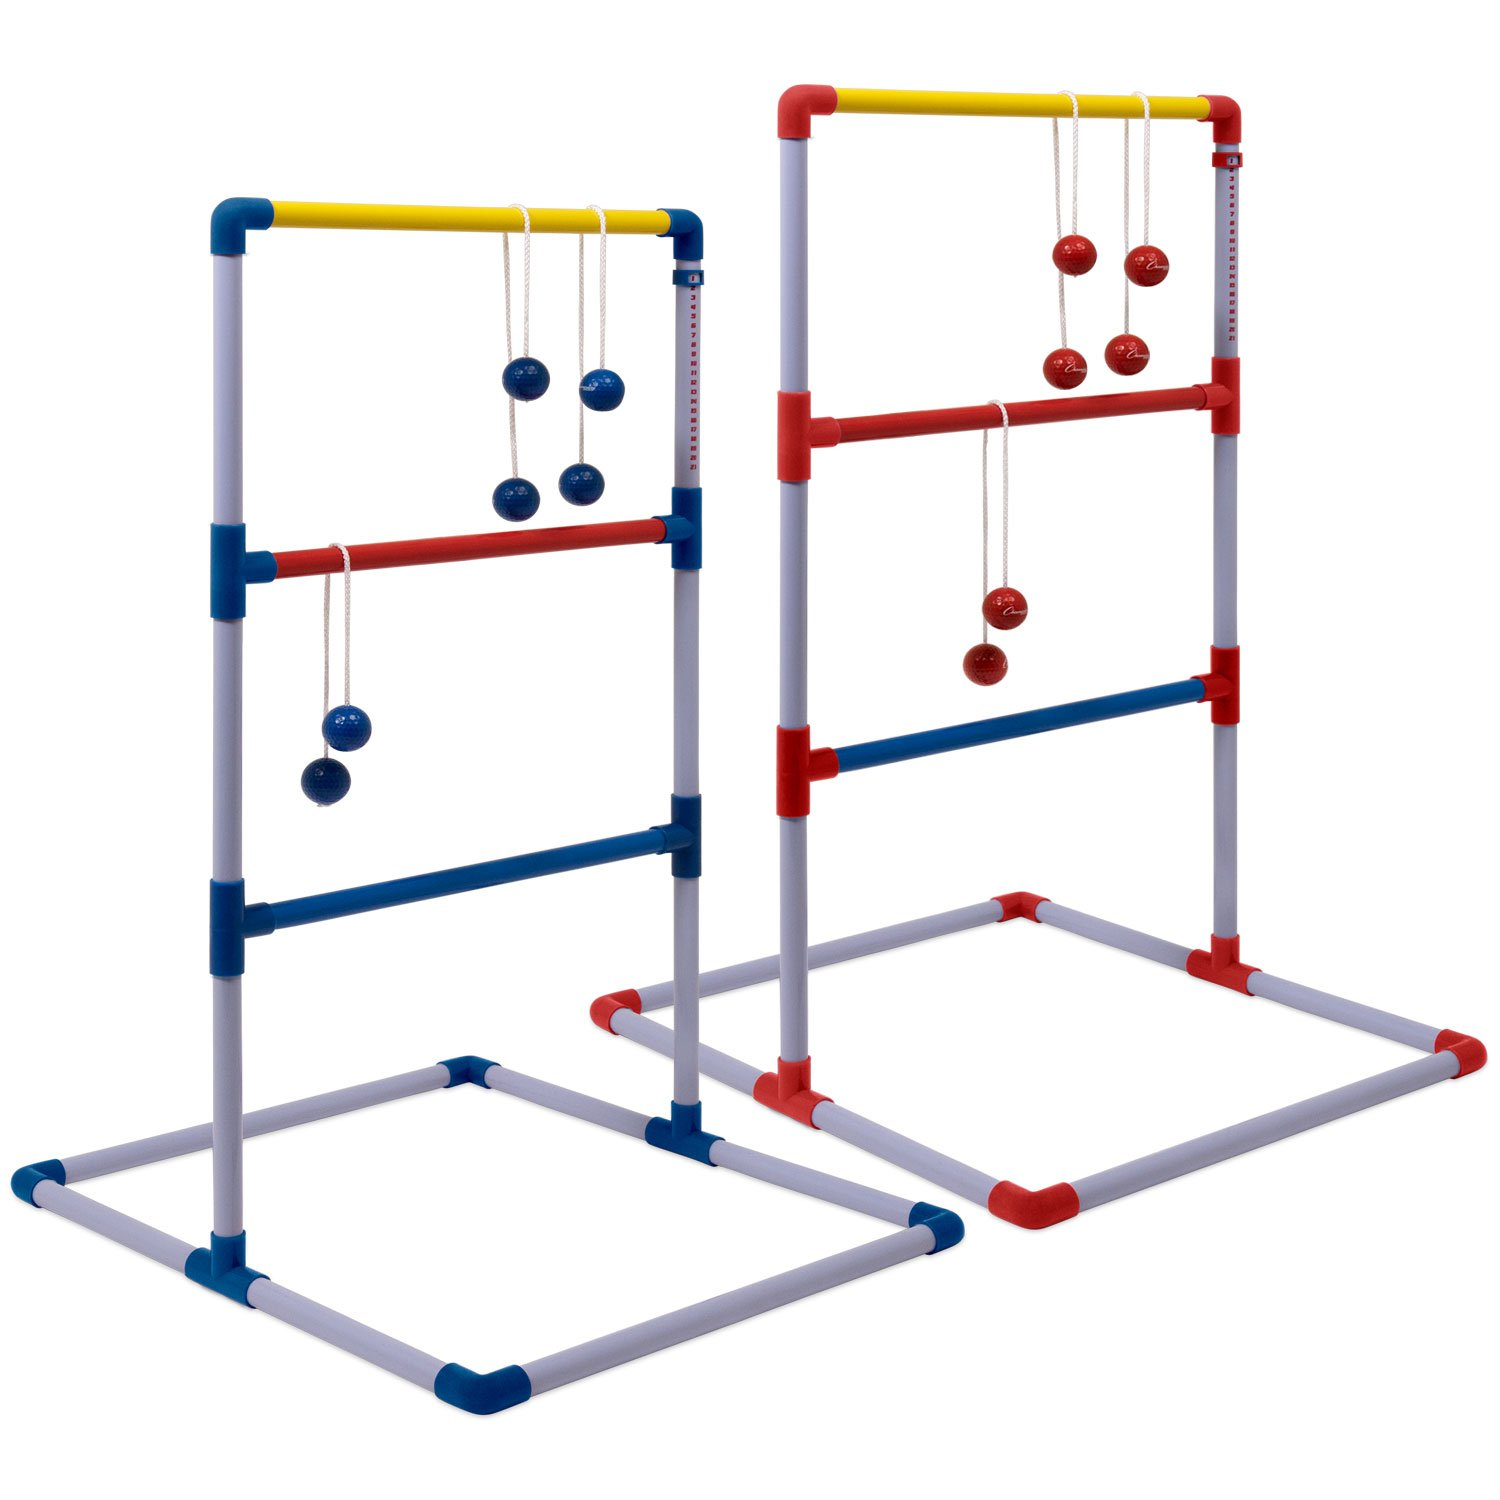 Champion Sports Deluxe Outdoor Ladder Ball Game: Backyard Party, Camping & Beach Games Ladder Golf Set for Adults and Kids with Bolas Balls and Carrying Case by Champion Sports